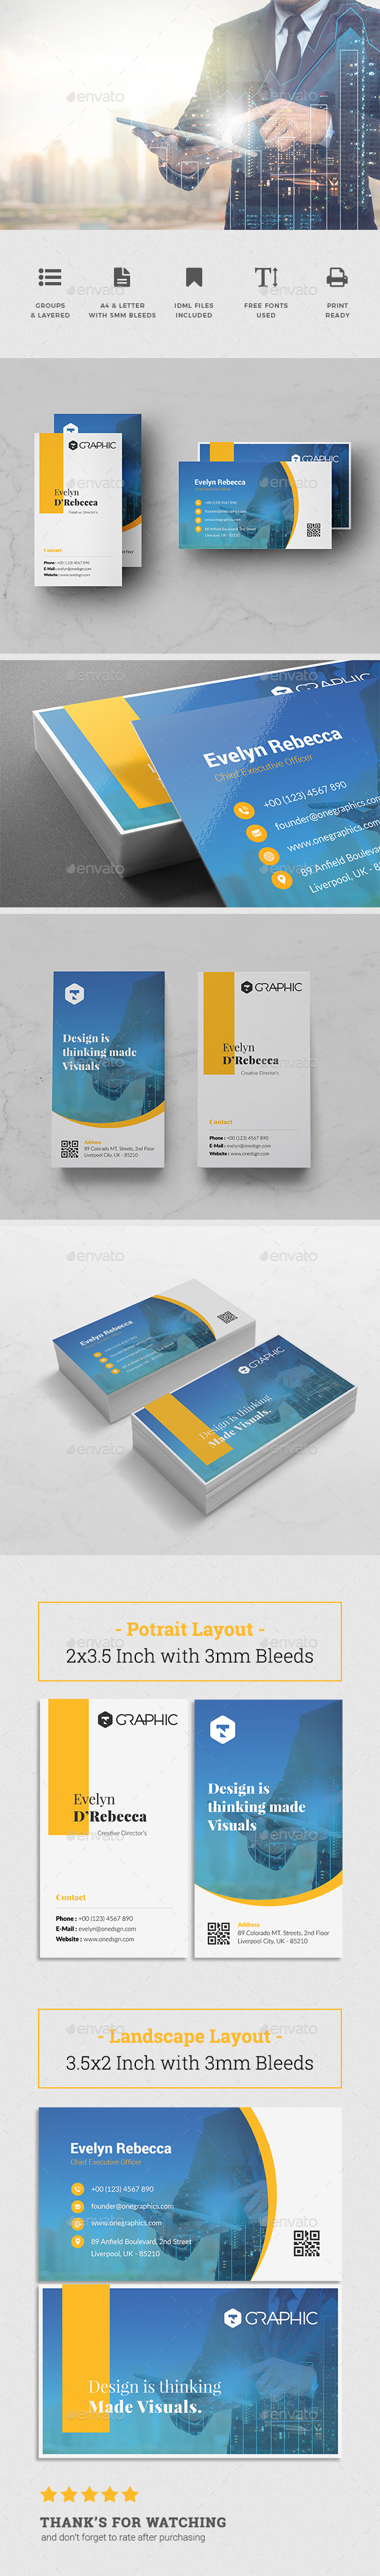 Minimalist Business Card Vol. 15 - Business Cards Print Templates